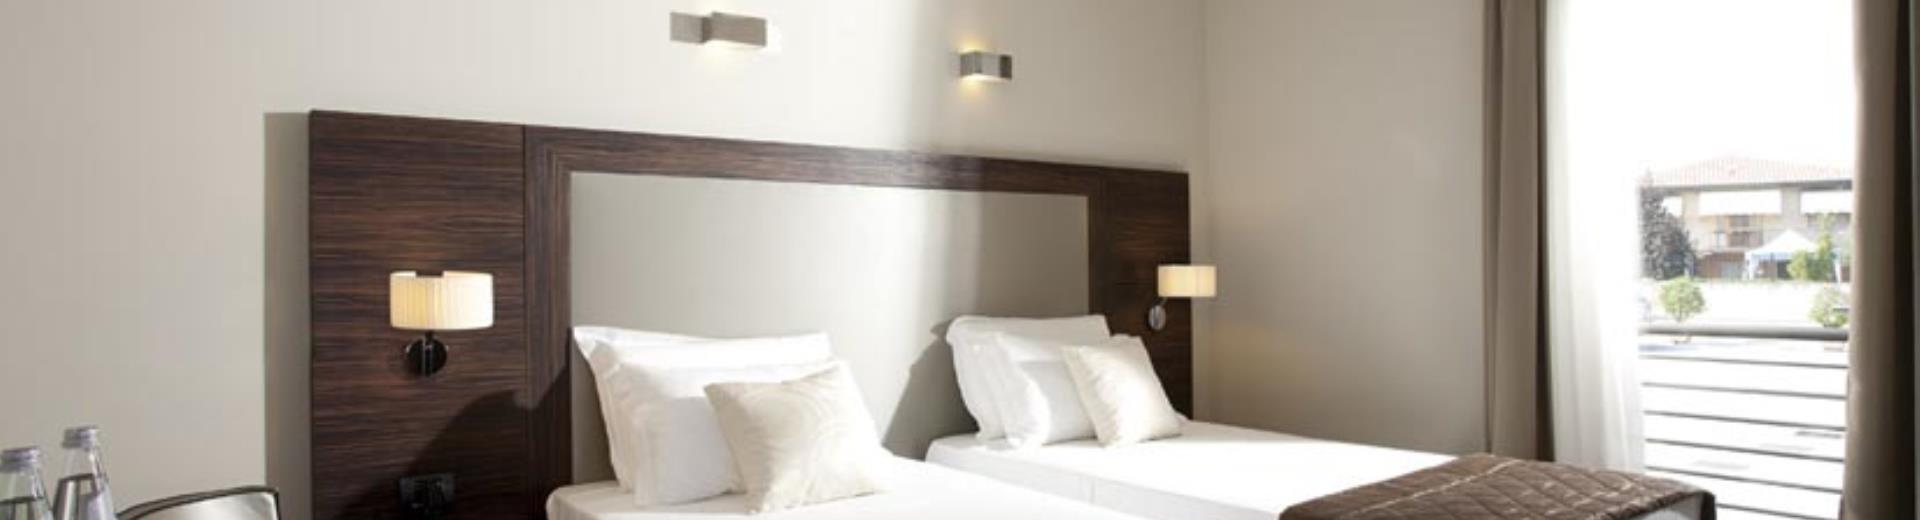 Visit Venice and stay at the Best Western Titian Inn Hotel Venice Airport